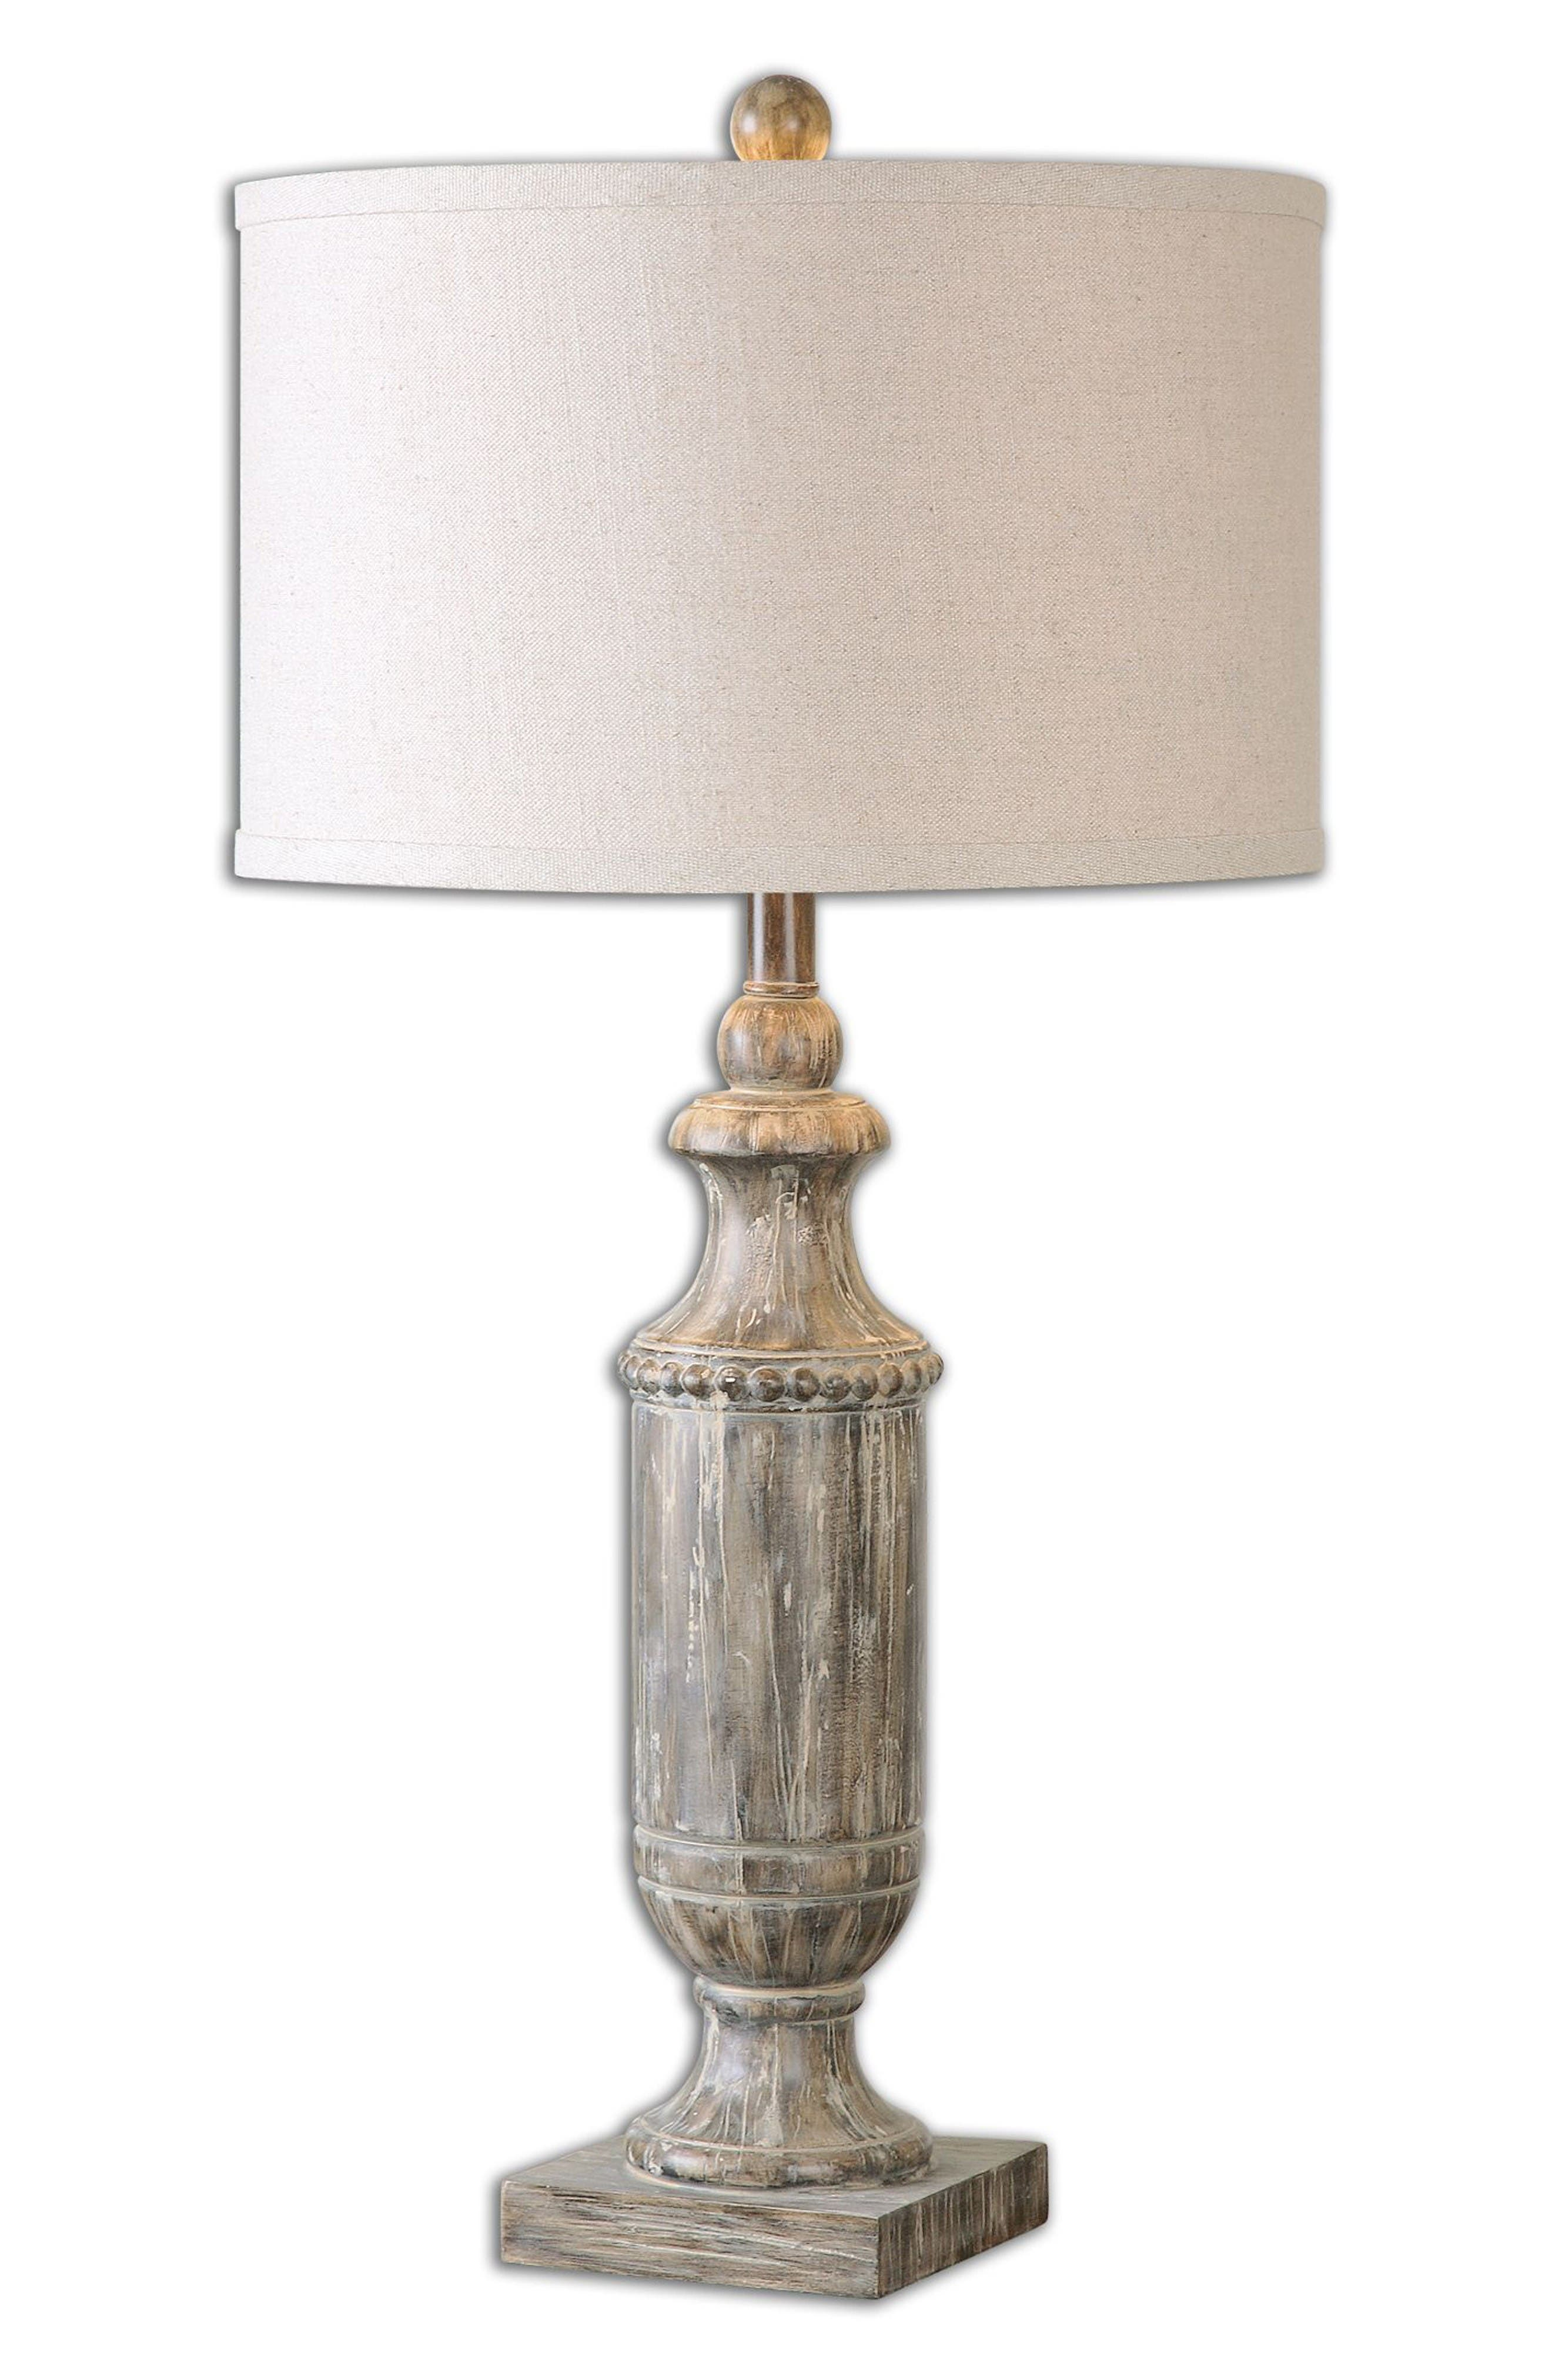 Alternate Image 1 Selected - Uttermost Agliano Table Lamp